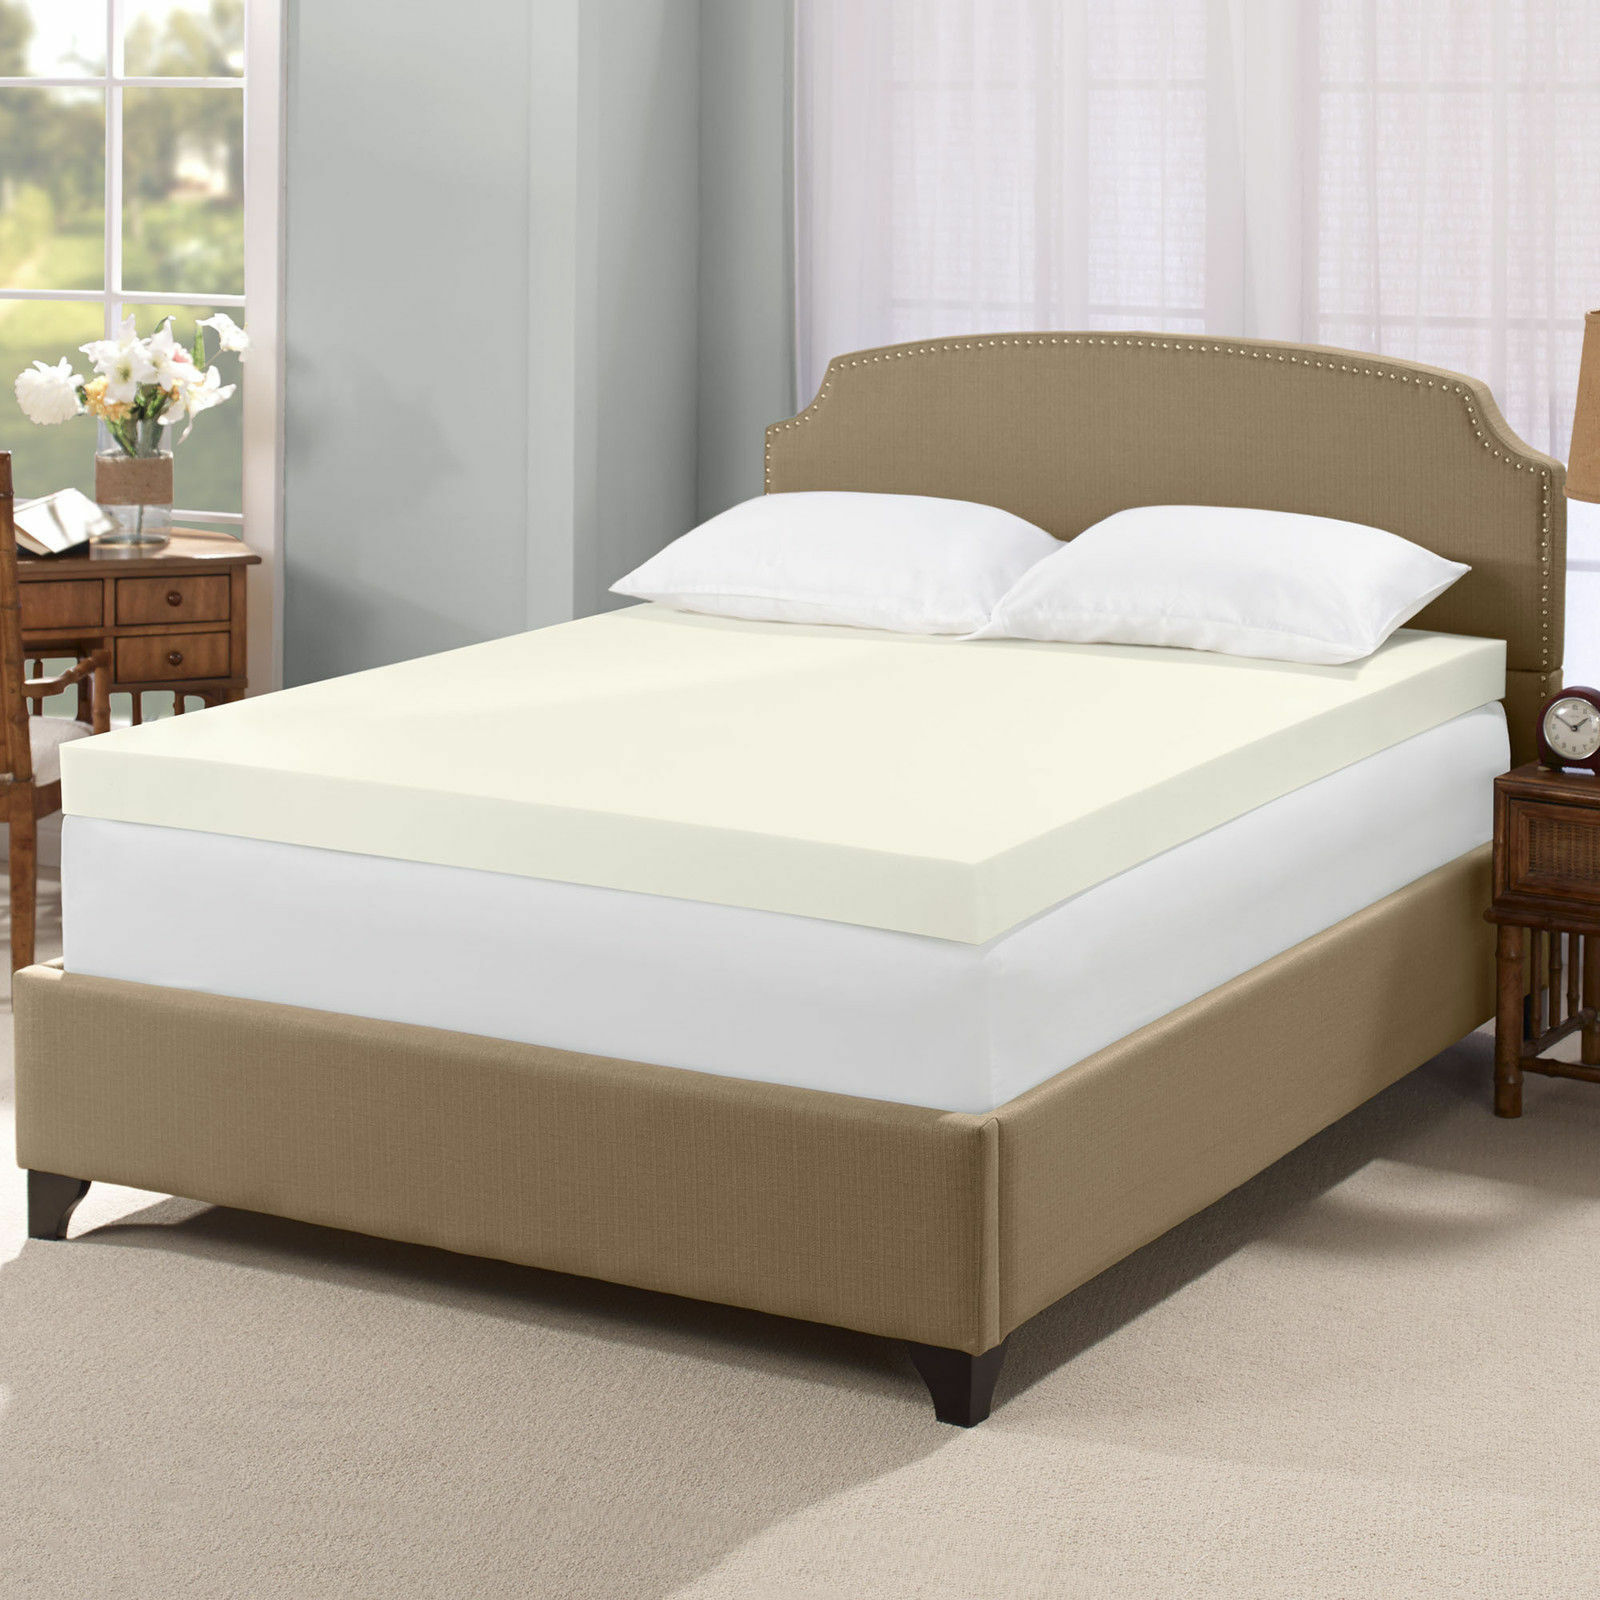 top 10 memory foam mattress toppers ebay. Black Bedroom Furniture Sets. Home Design Ideas